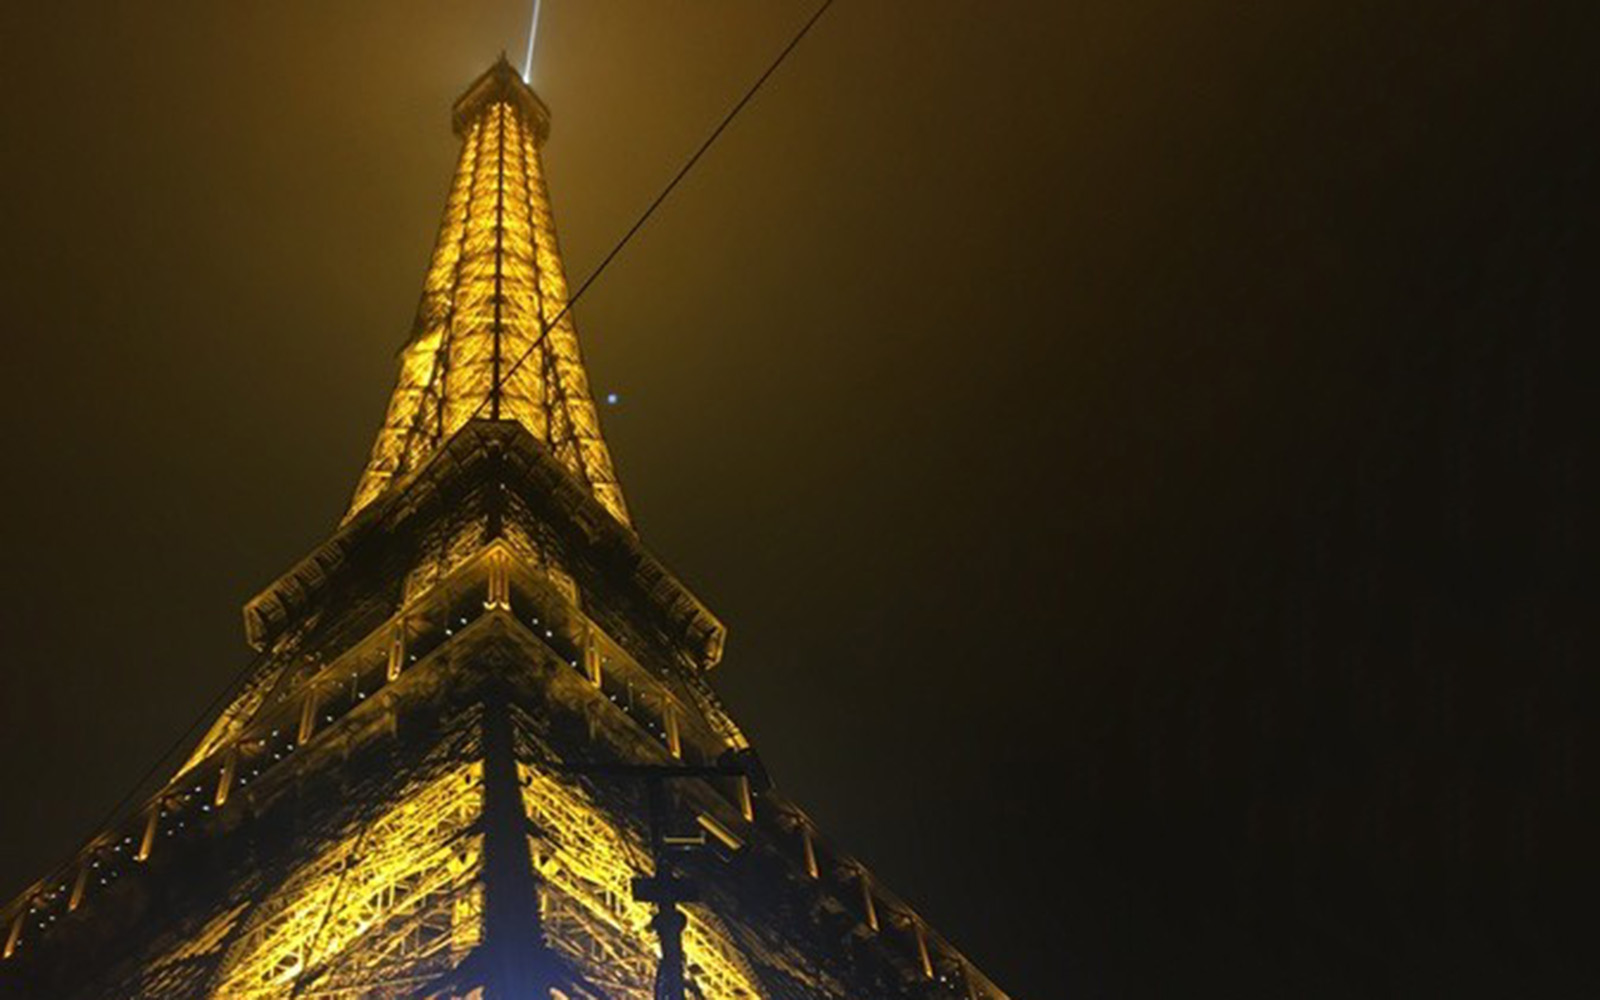 The Eiffel Tower in Paris, France (Brendan Mulcahey/UConn School of Business)